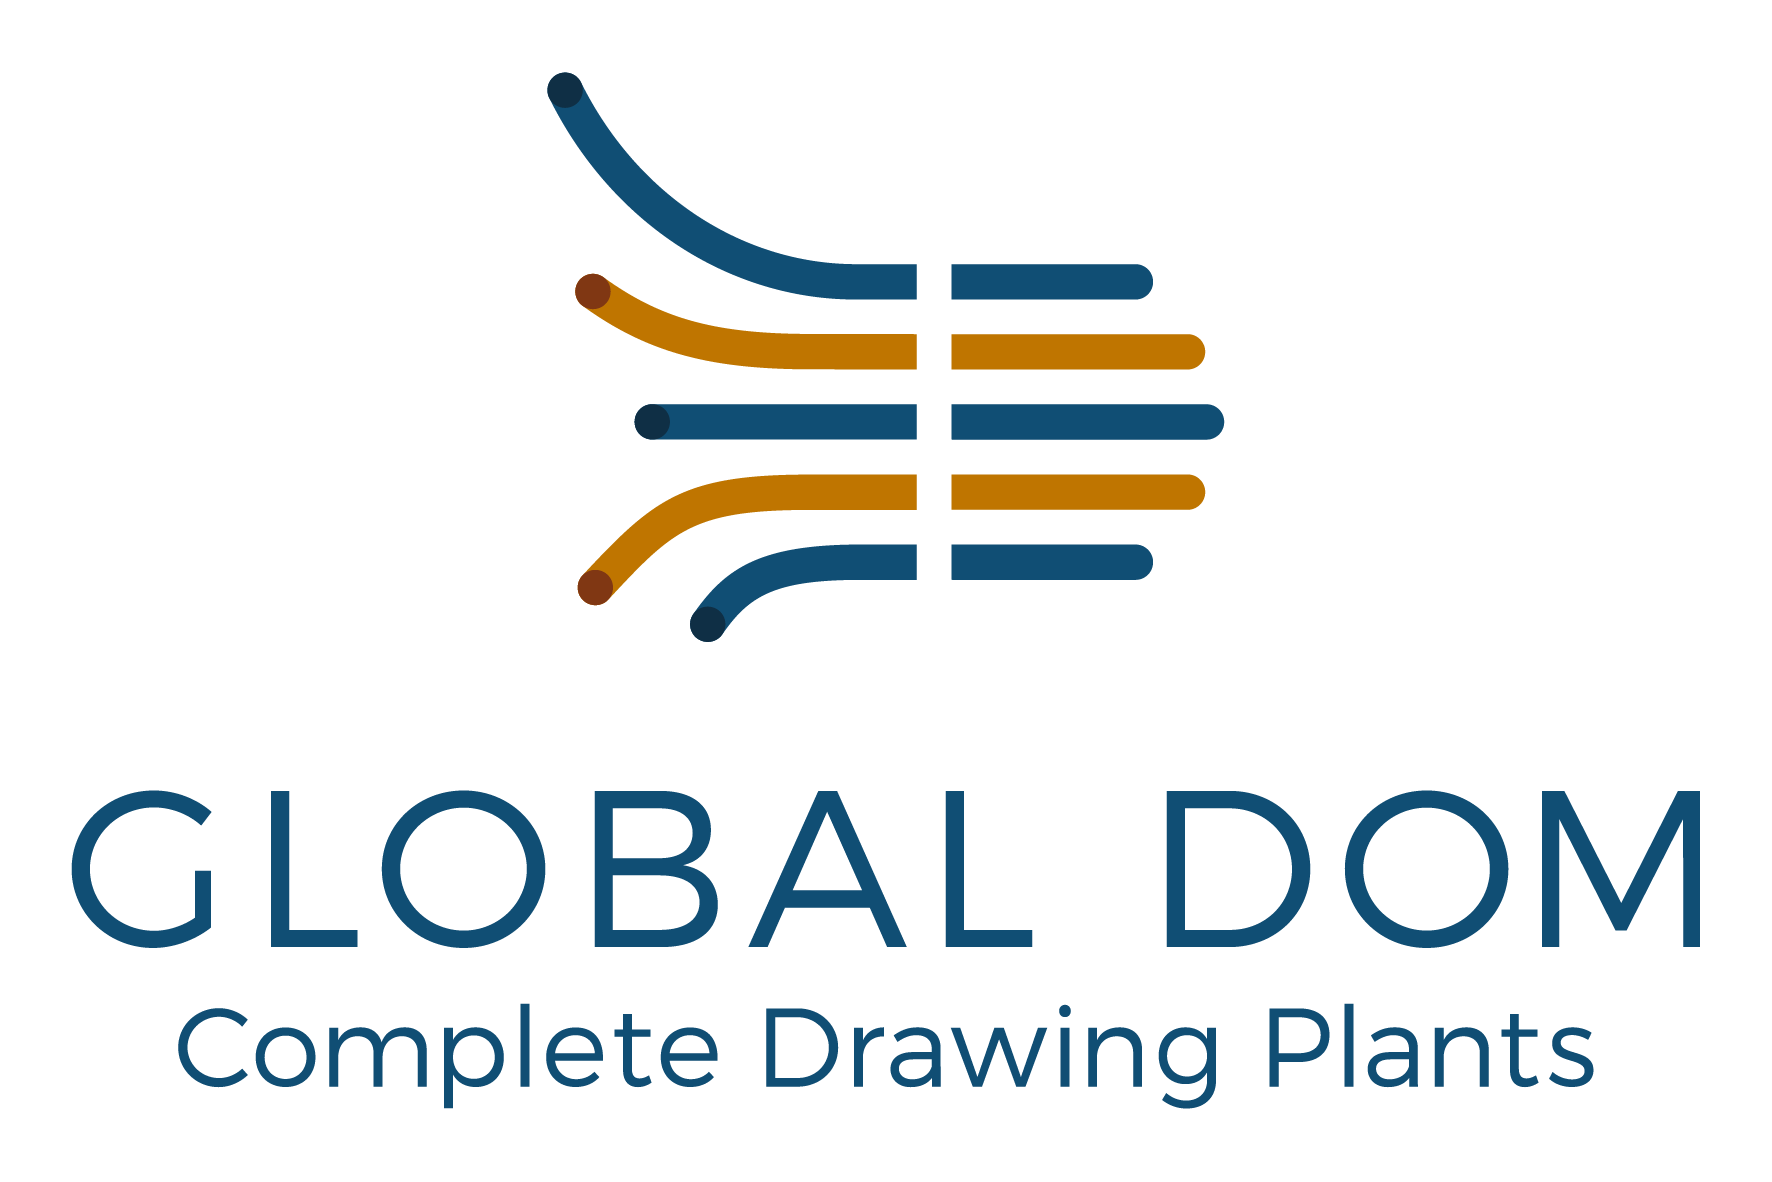 Global dom - complete drawing plants